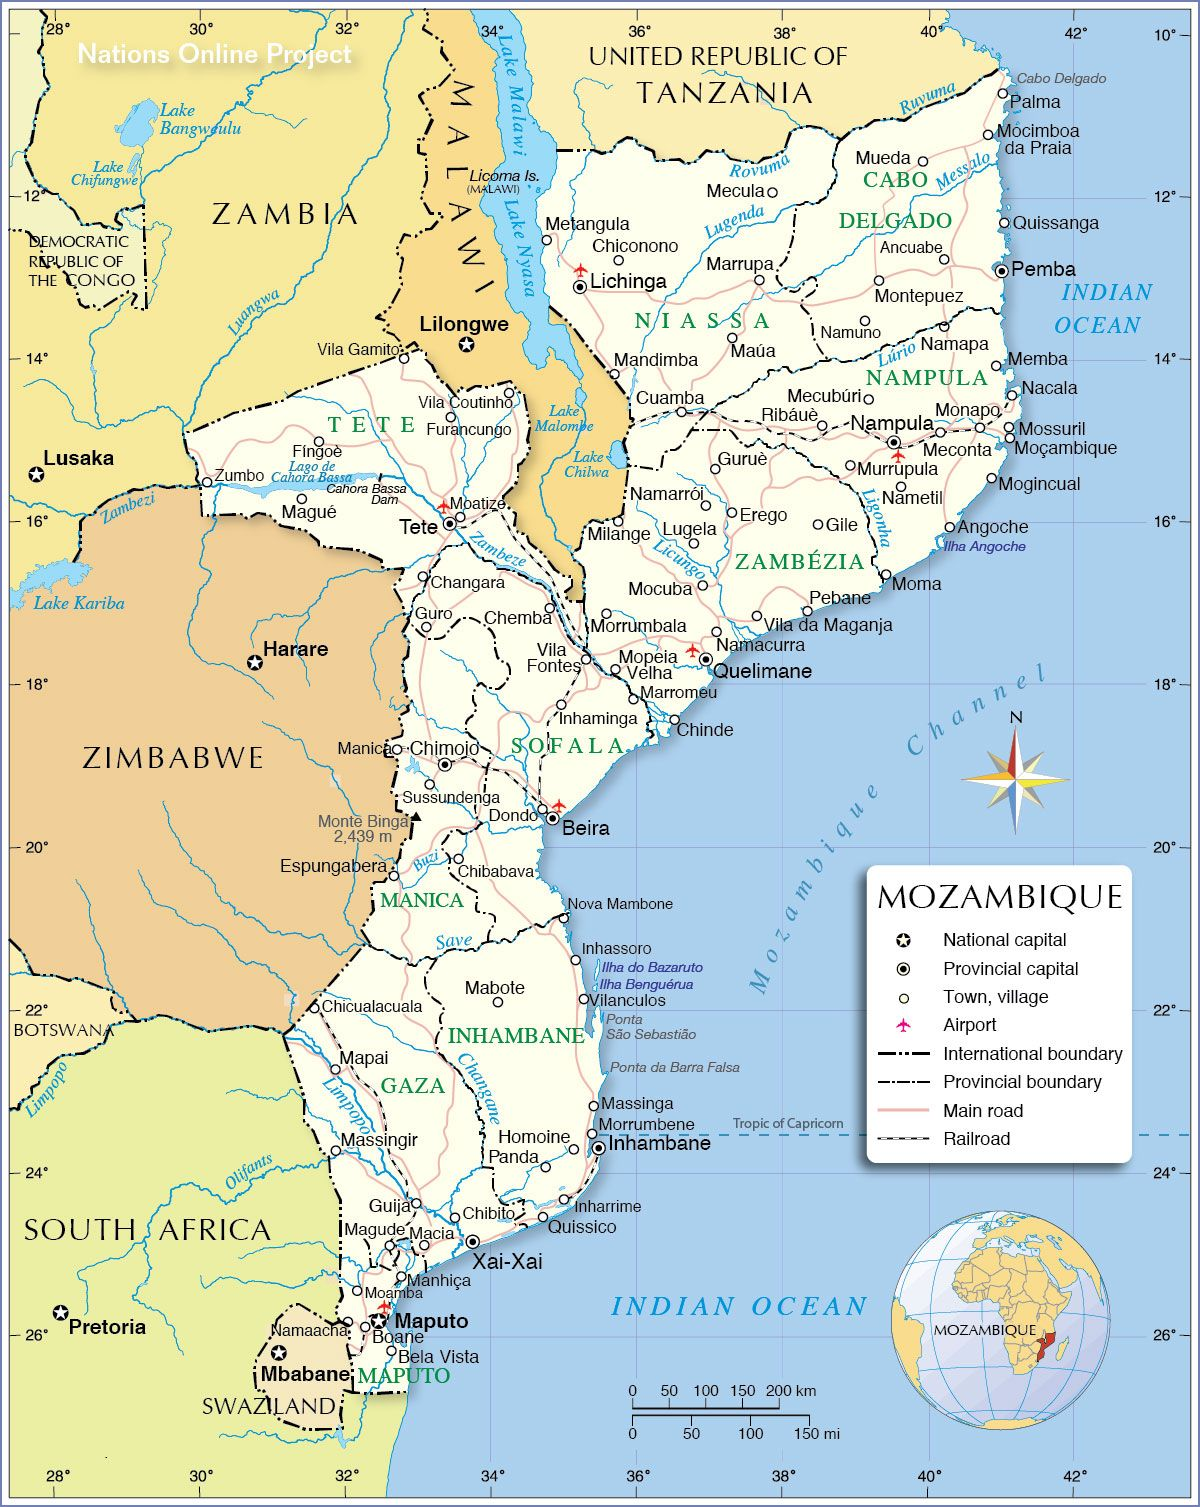 map of mozambique and south africa Map Of Mozambique Mozambique Political Map Map map of mozambique and south africa